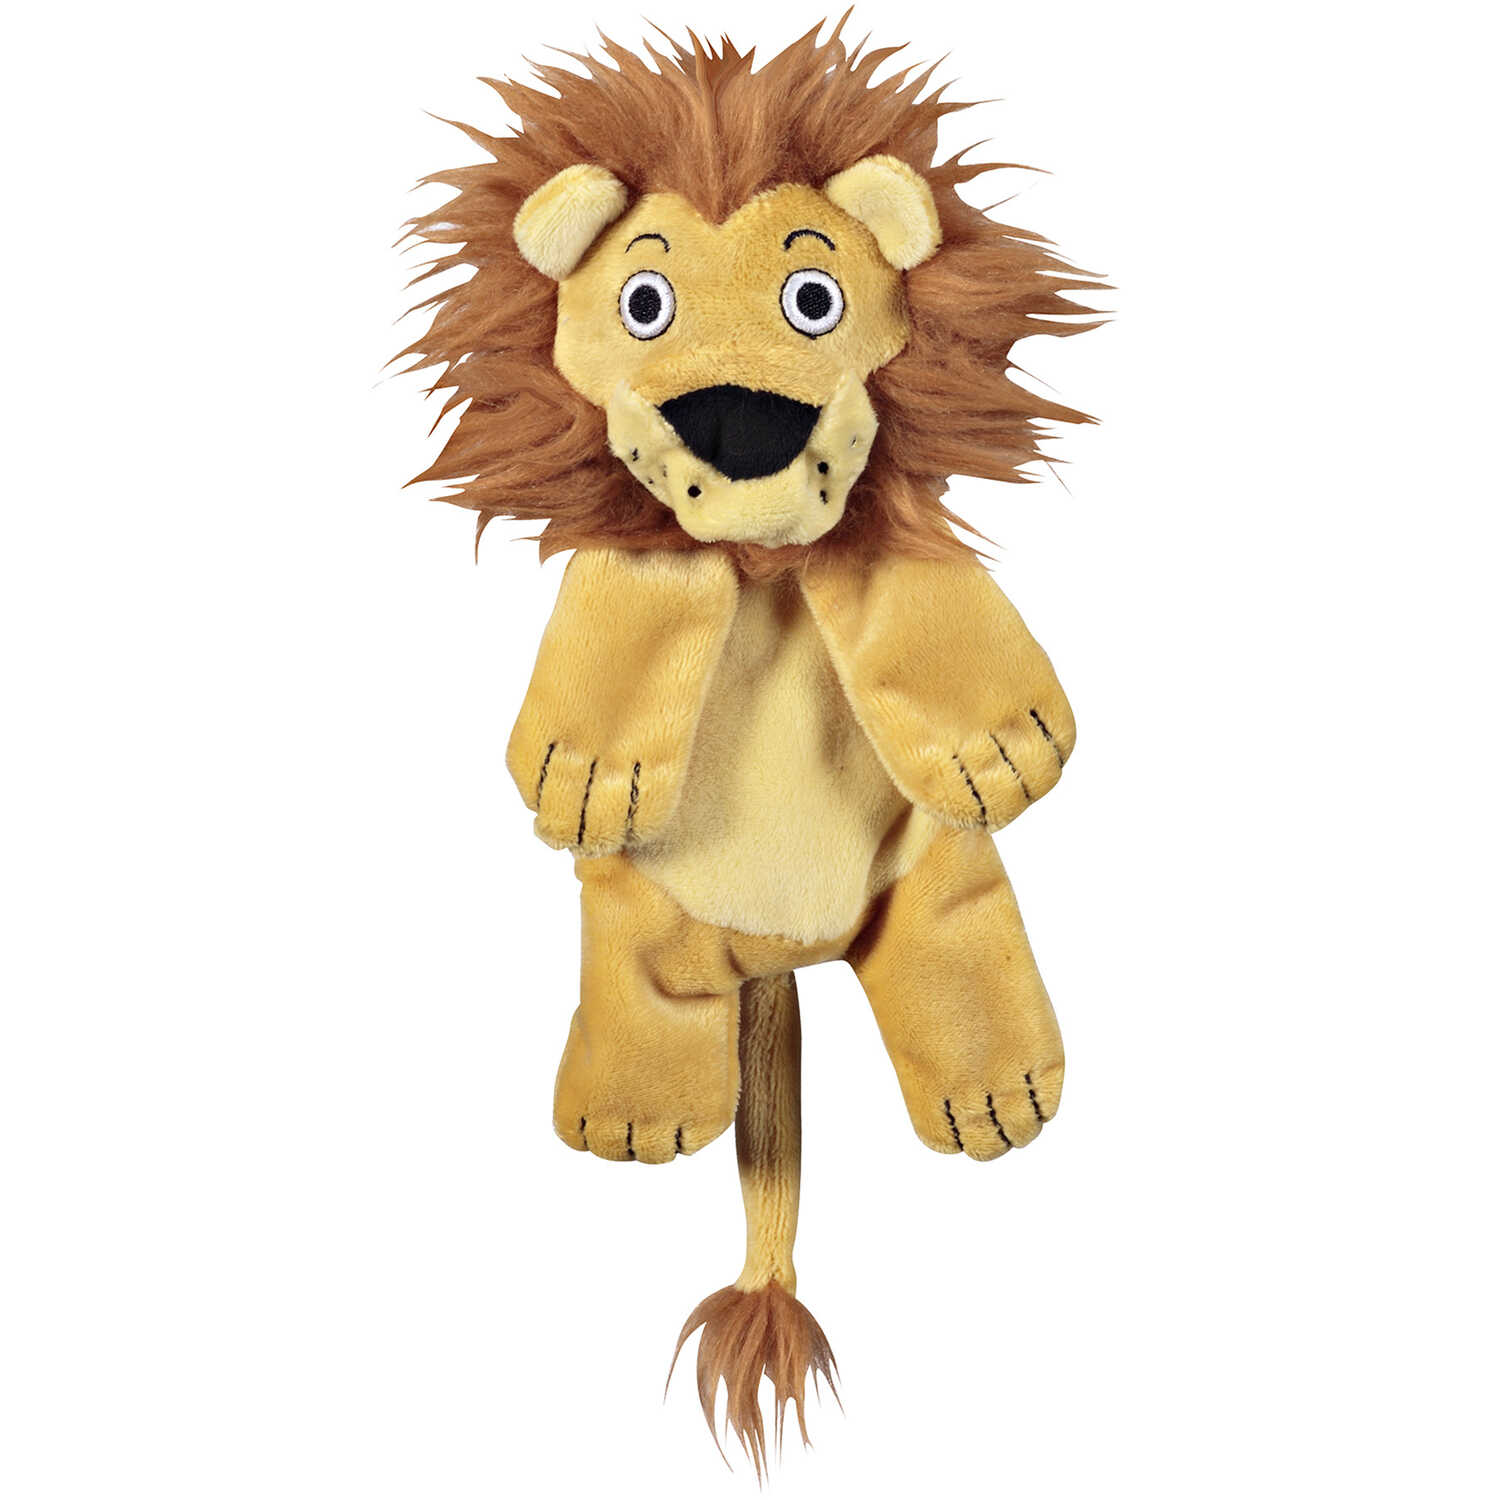 JW Pet  Crackle Heads  Beige  Crackle Heads Lion  Plush  Dog Toy  Medium